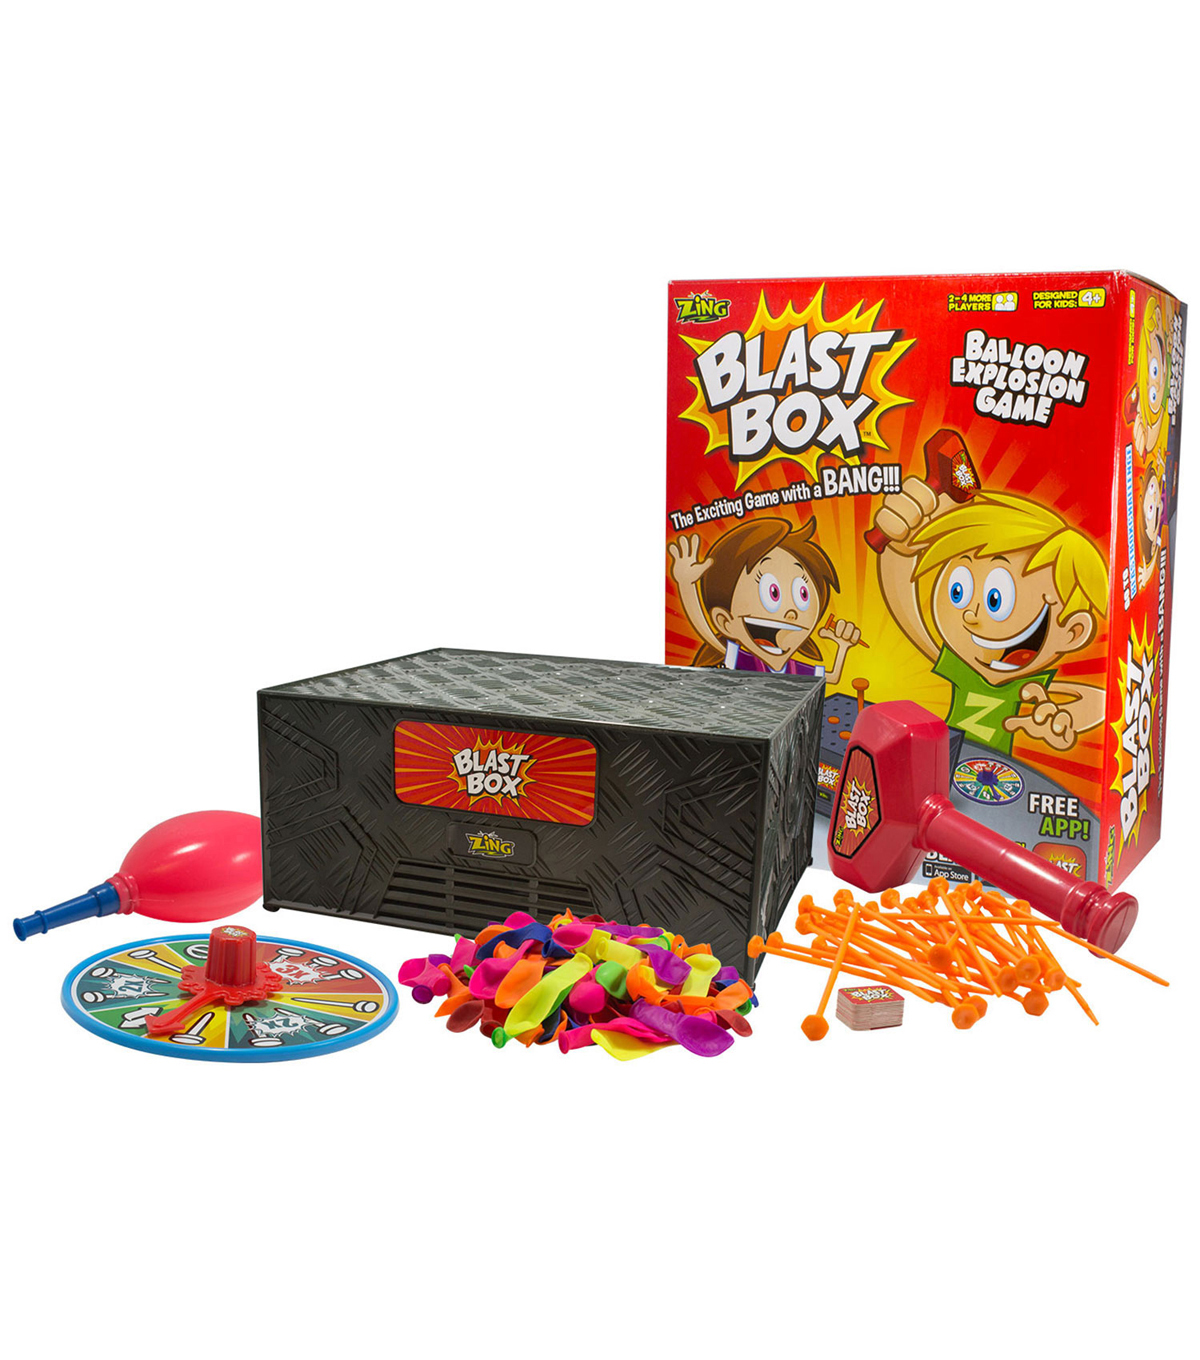 Zing Blast Box Game